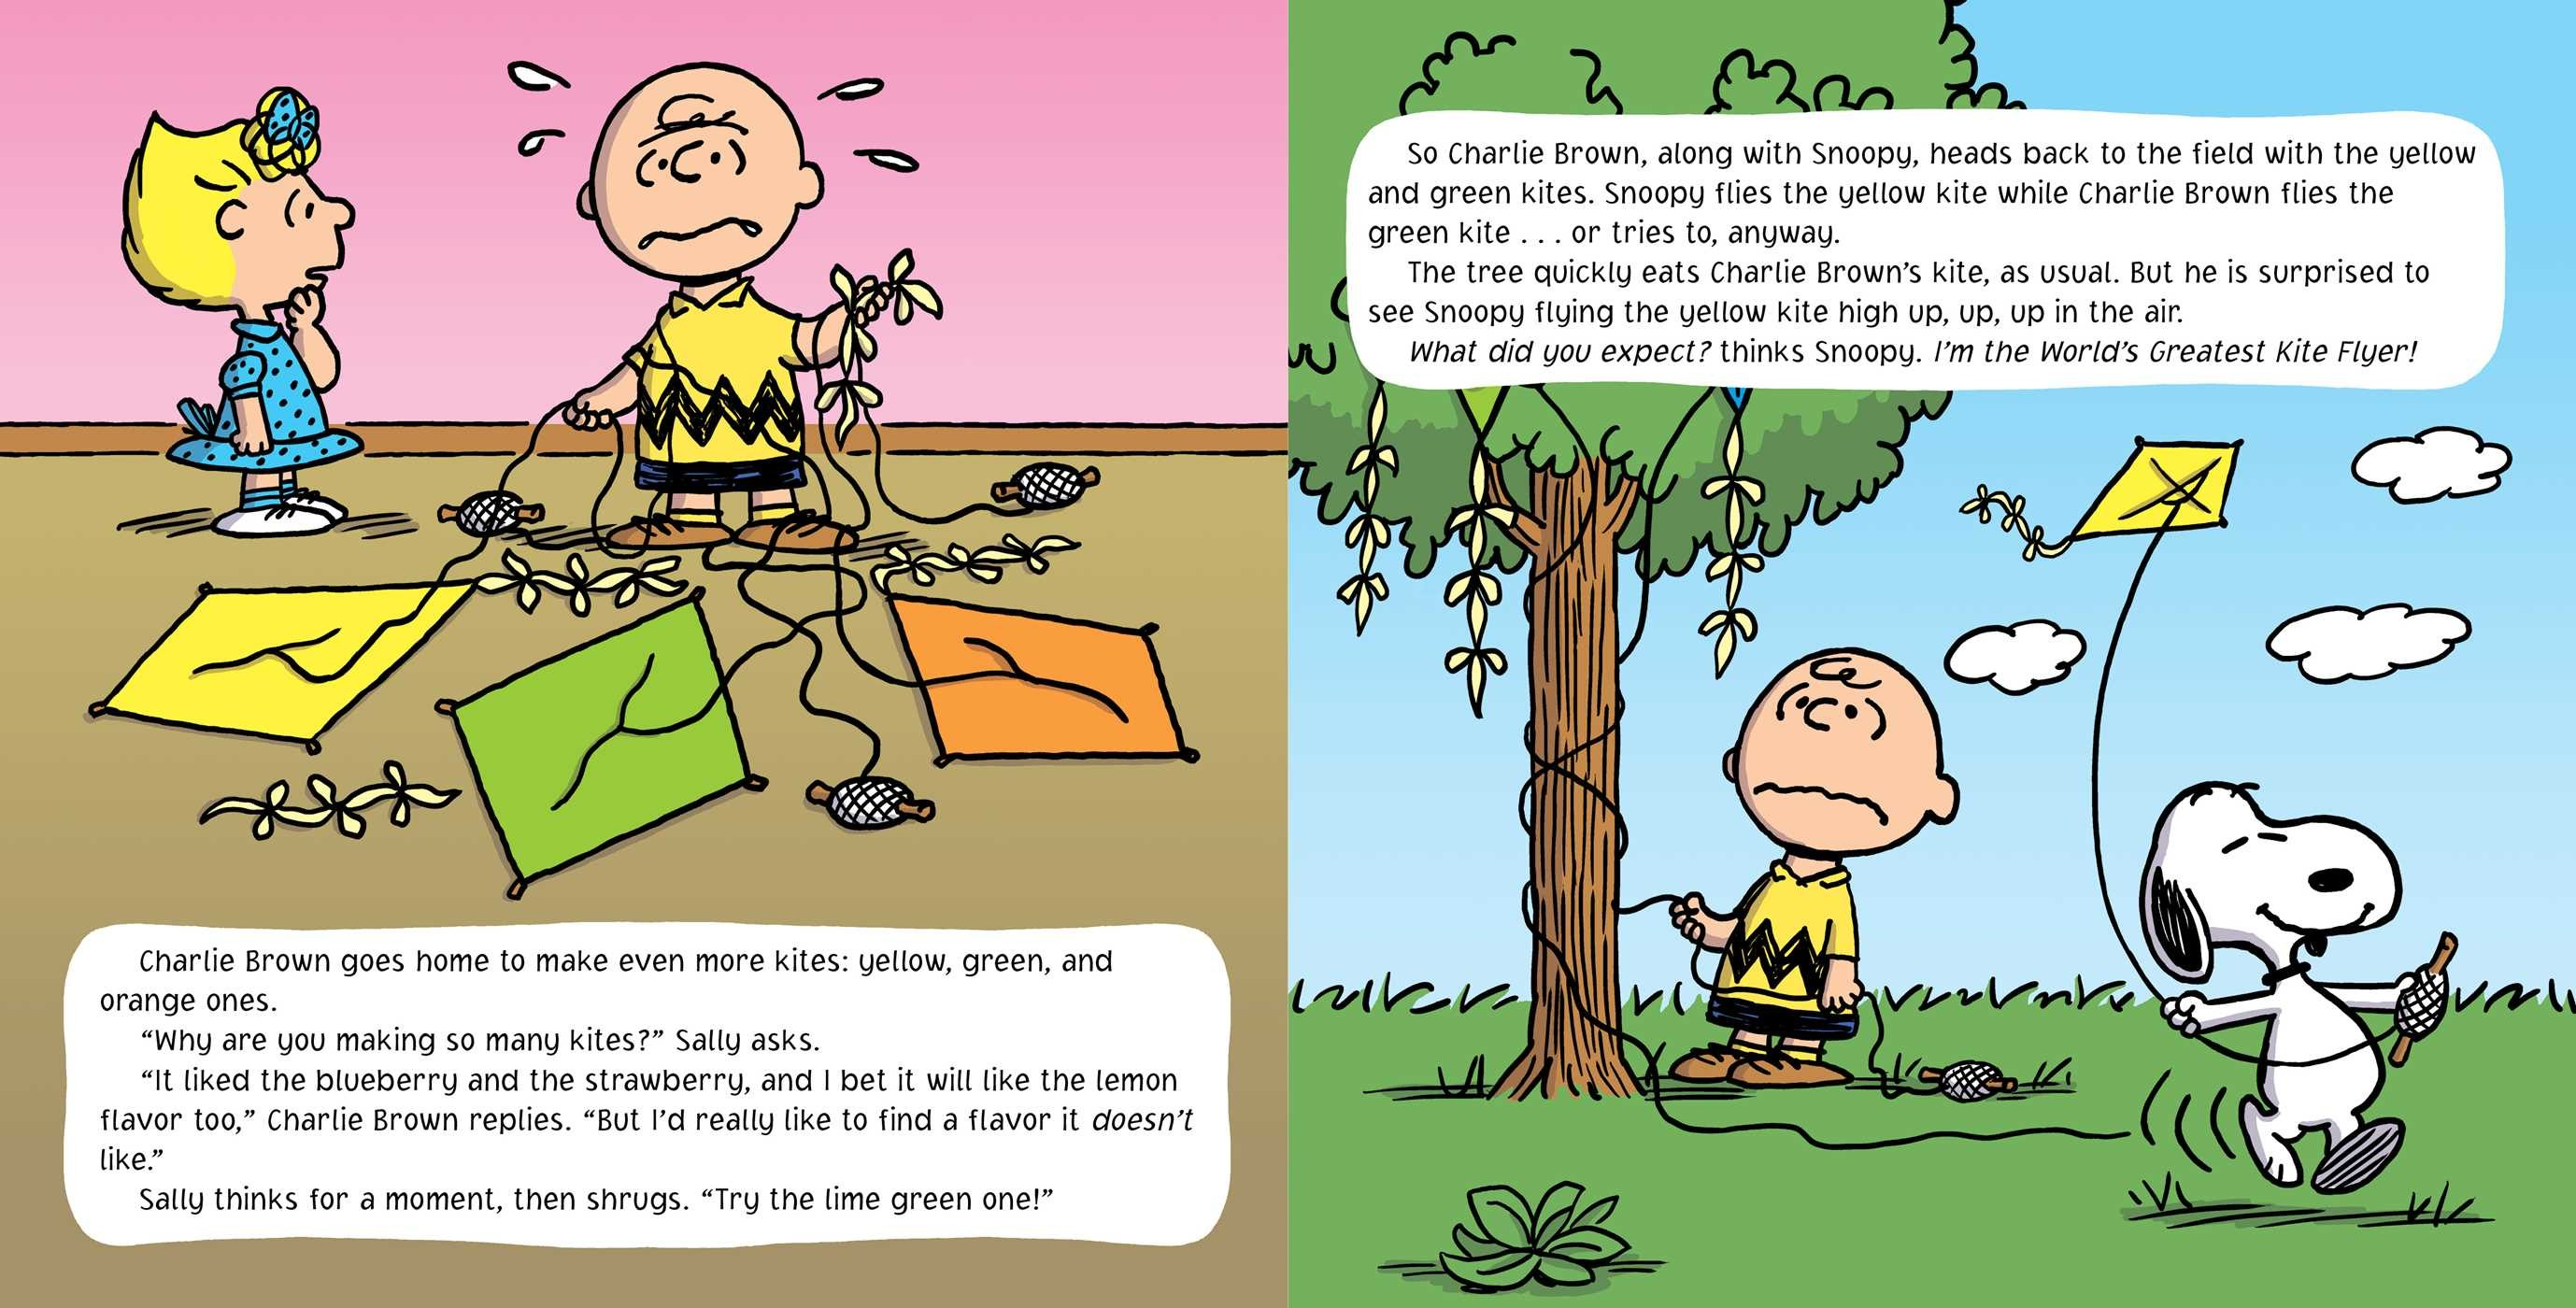 Go fly a kite charlie brown 9781481439558.in03